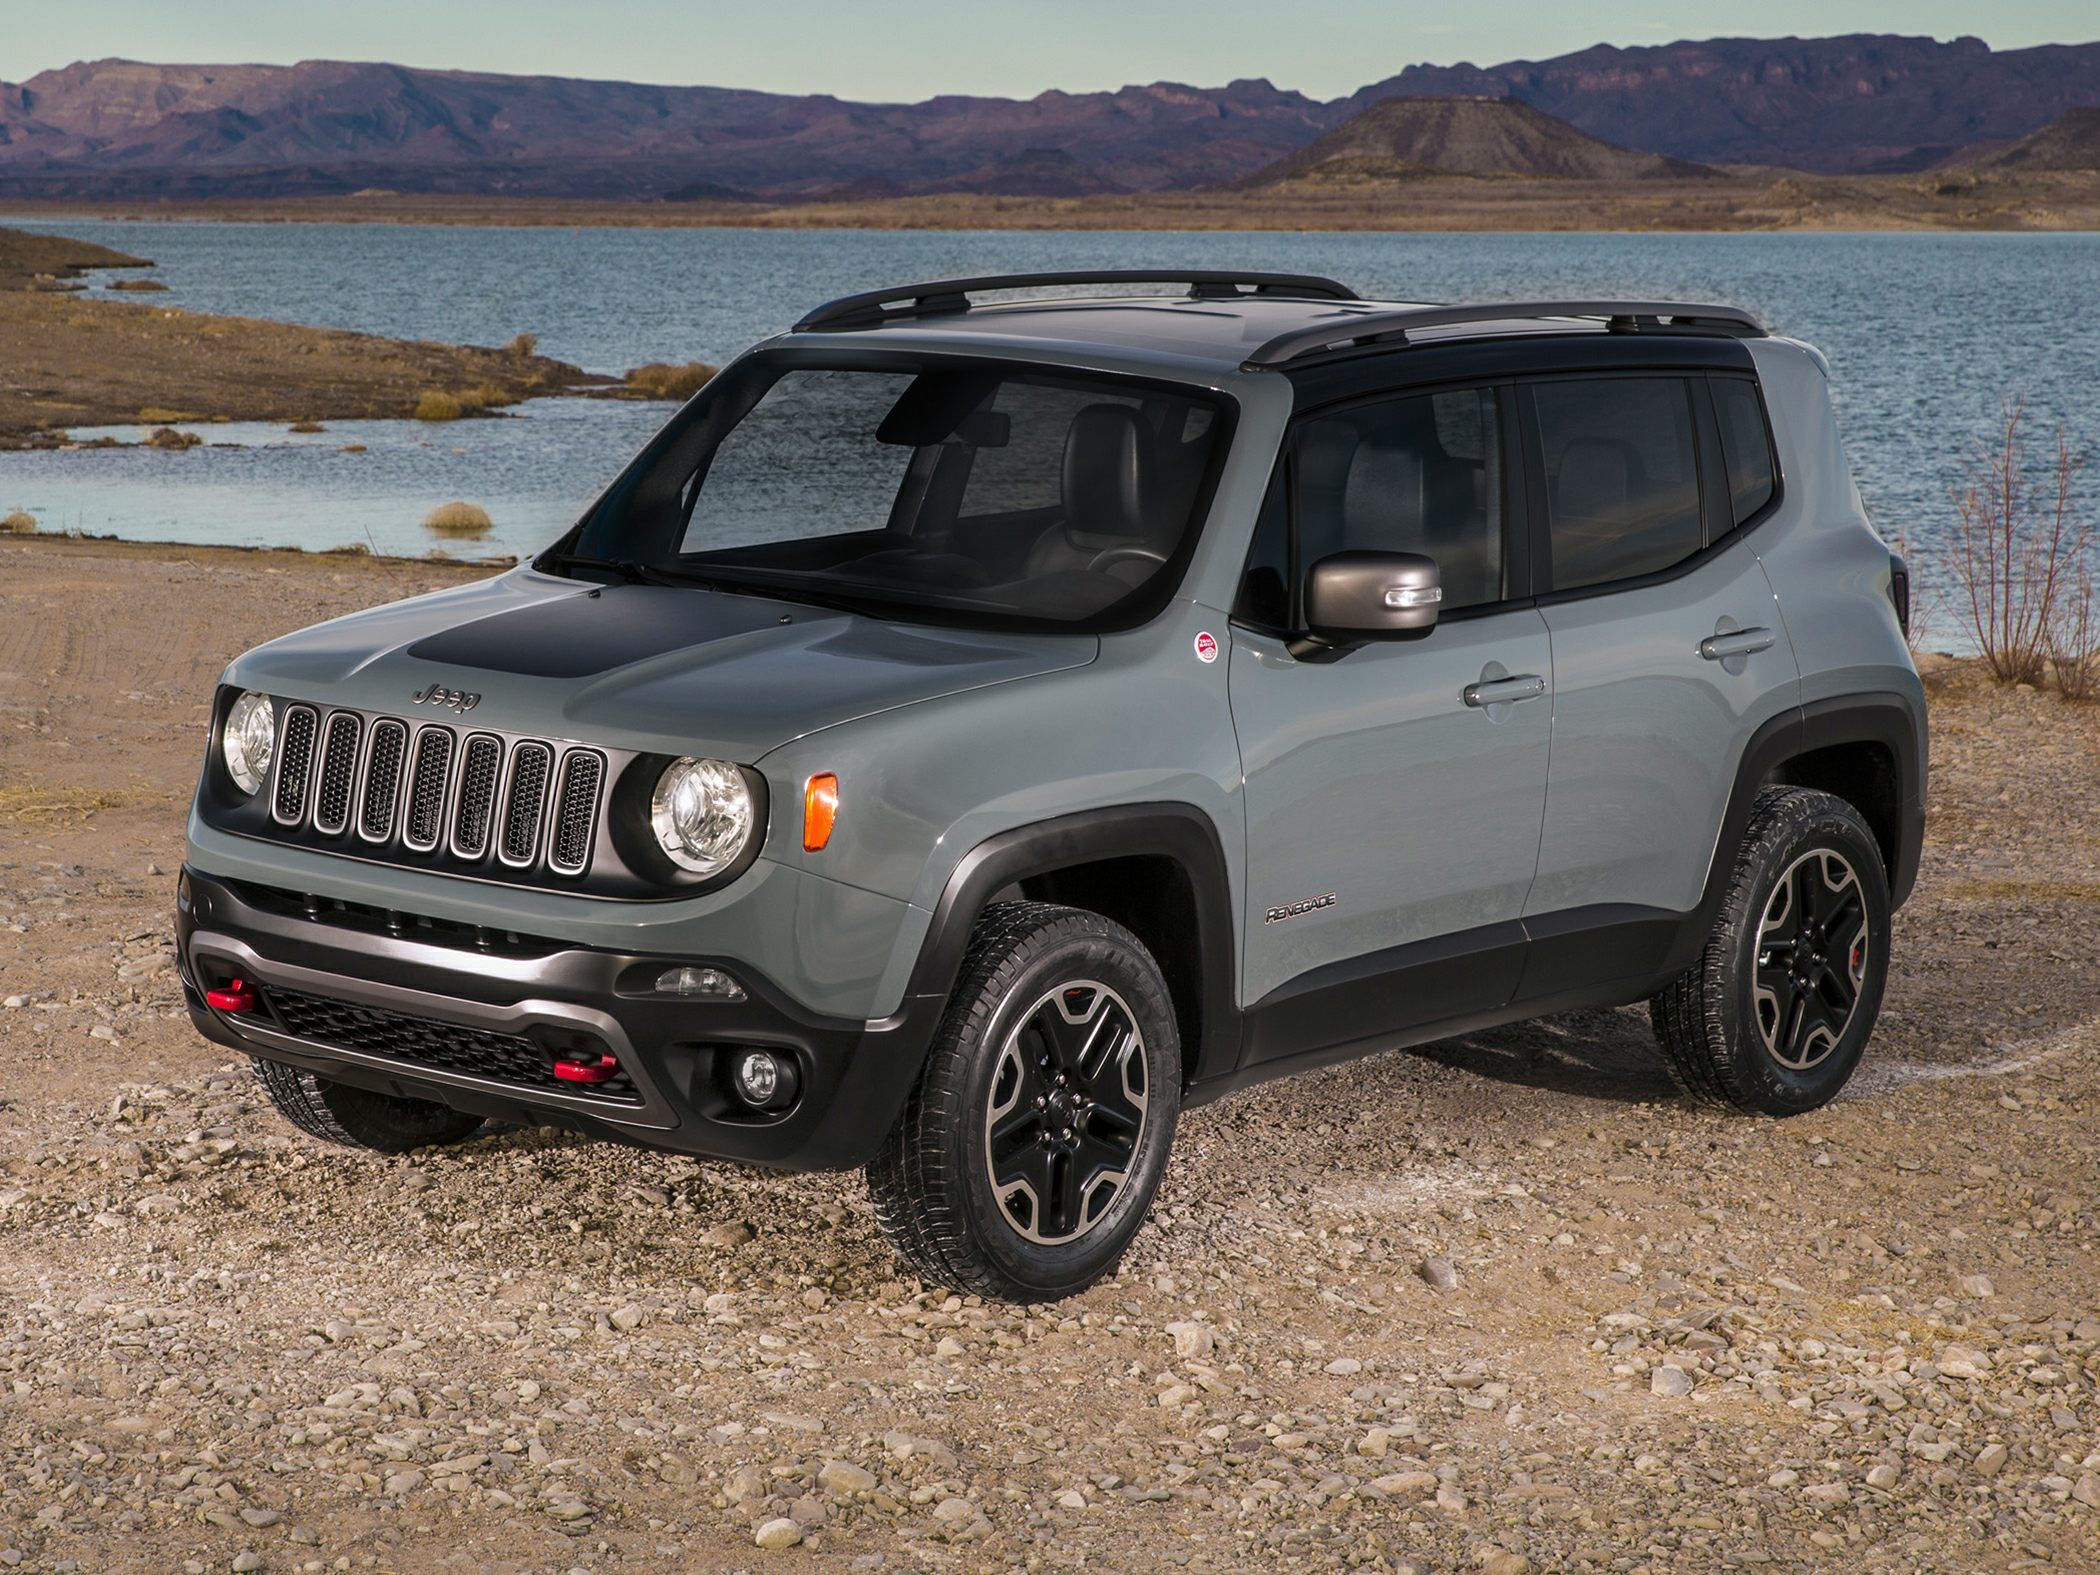 Best Jeep Renegade Colors Jeep Jeep Grand Cherokee Jeep Liberty